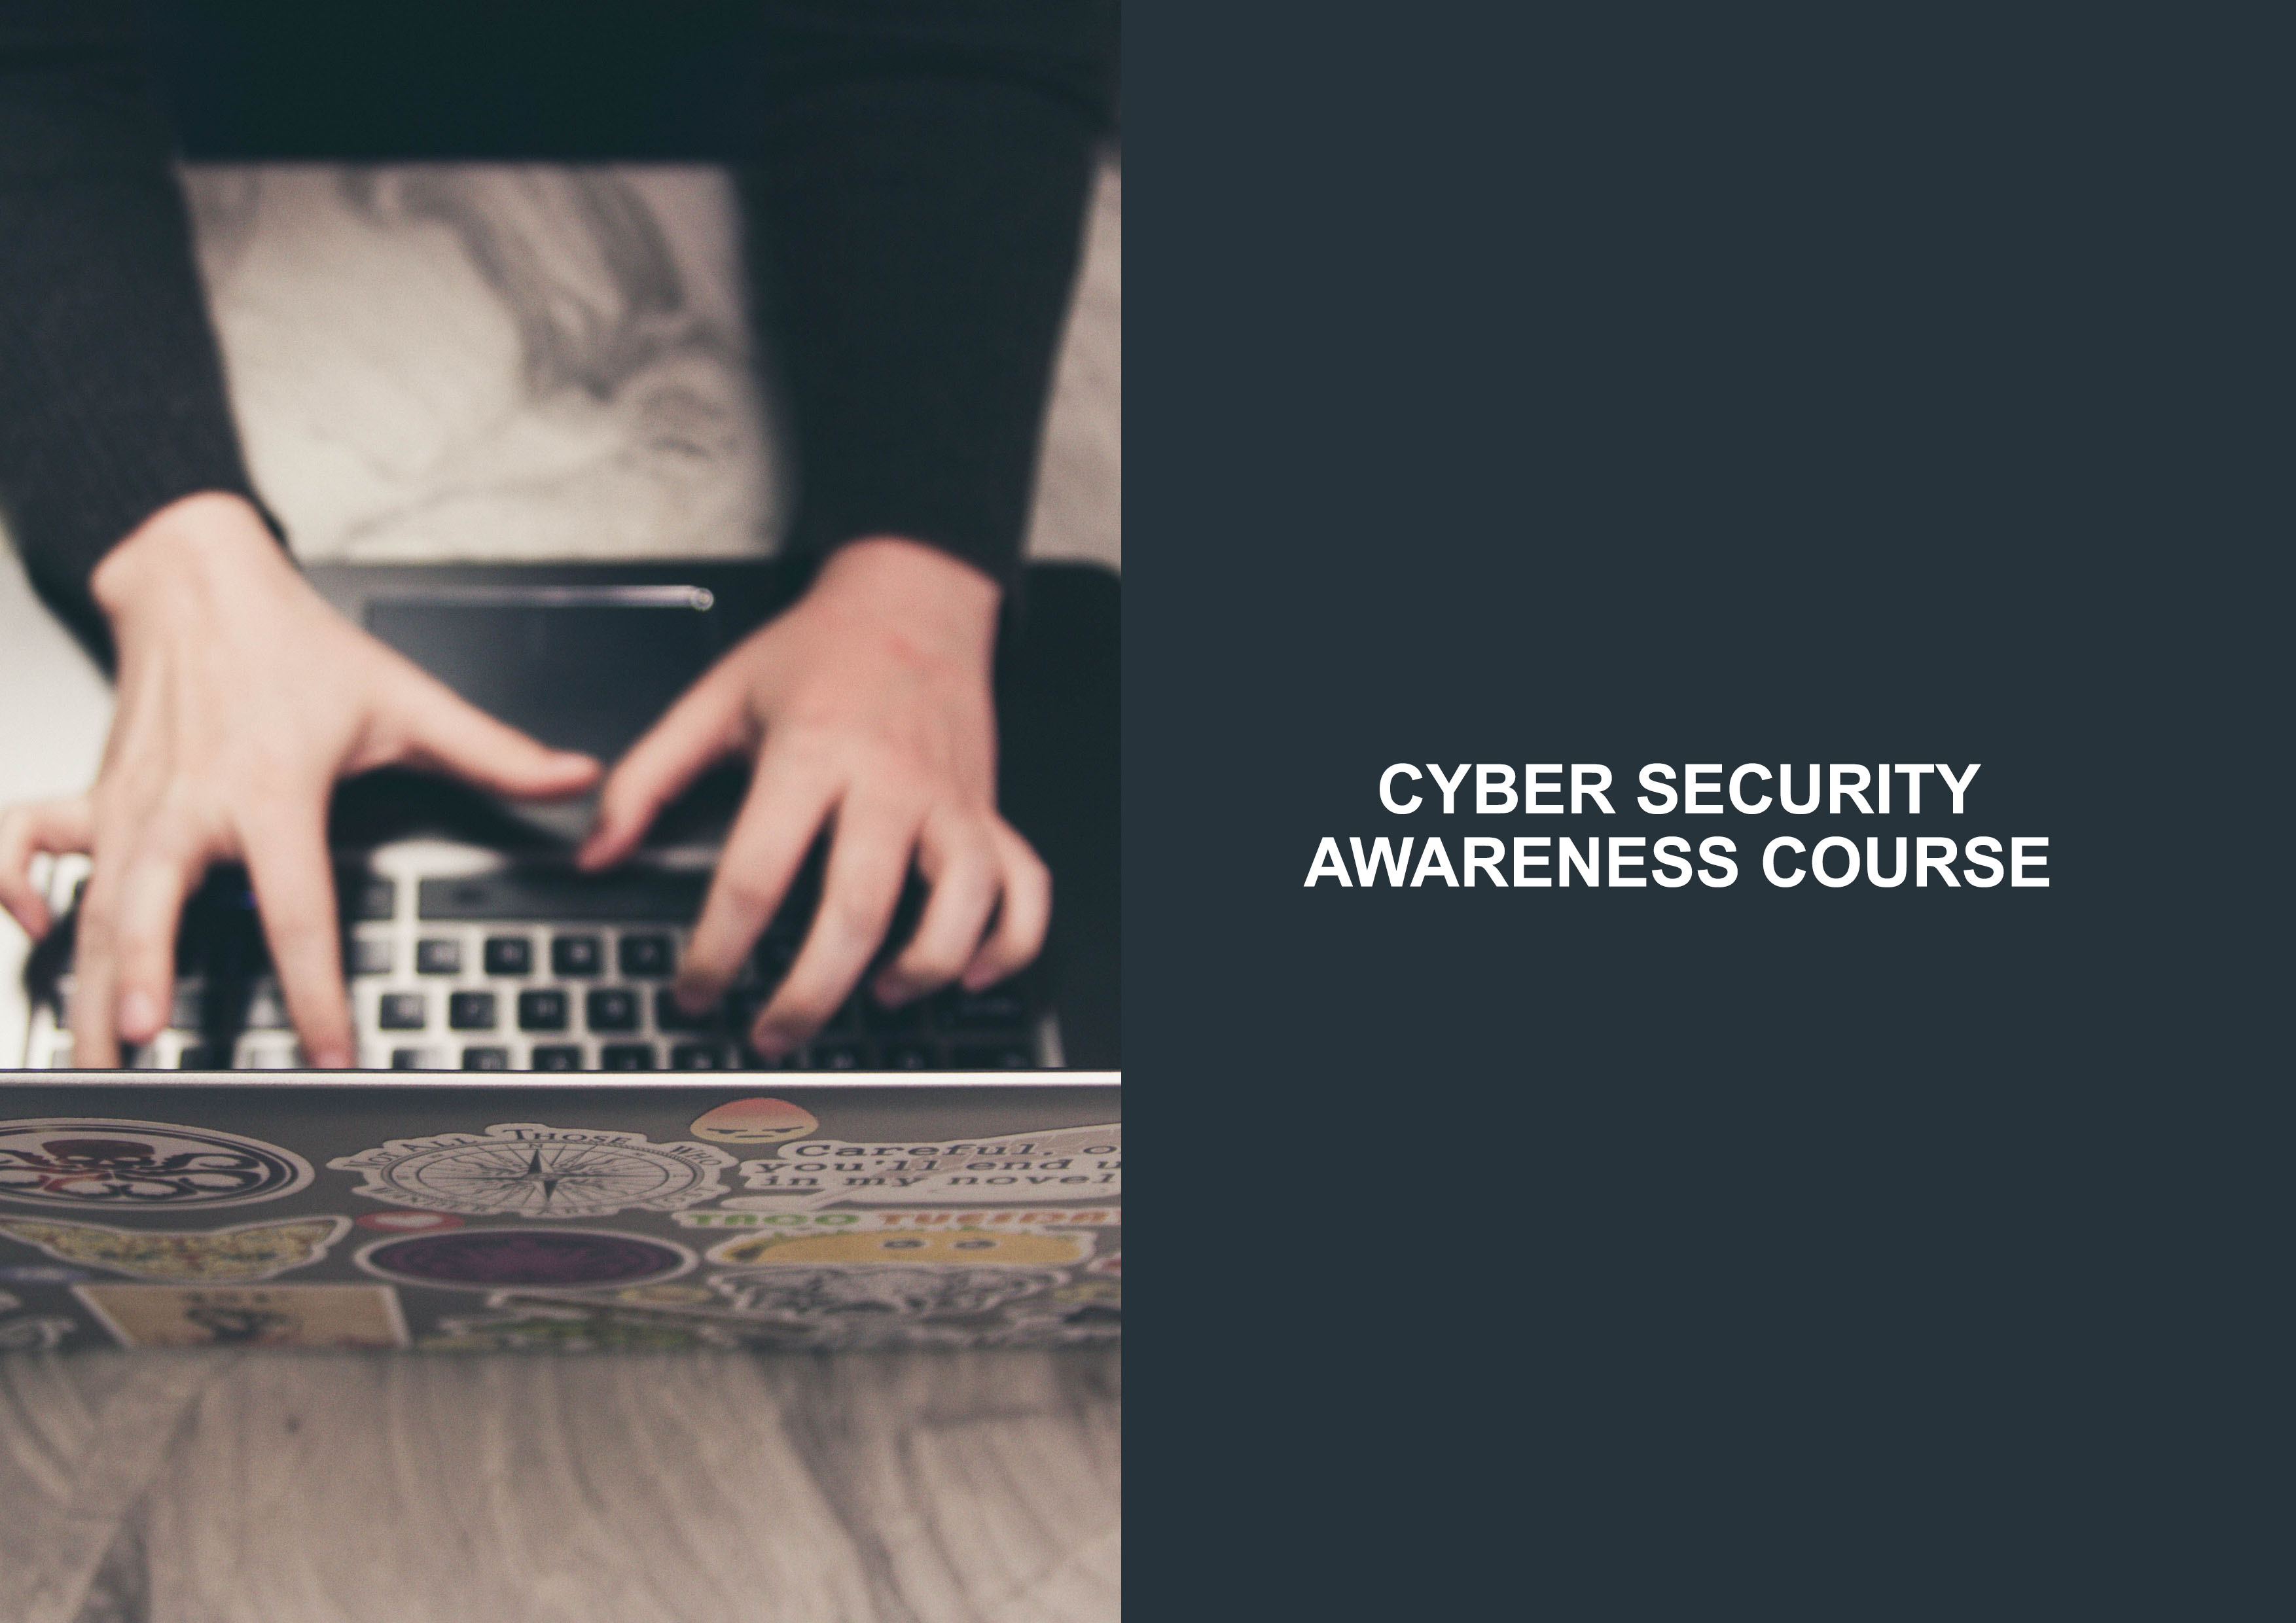 Cyber Security Awareness Course